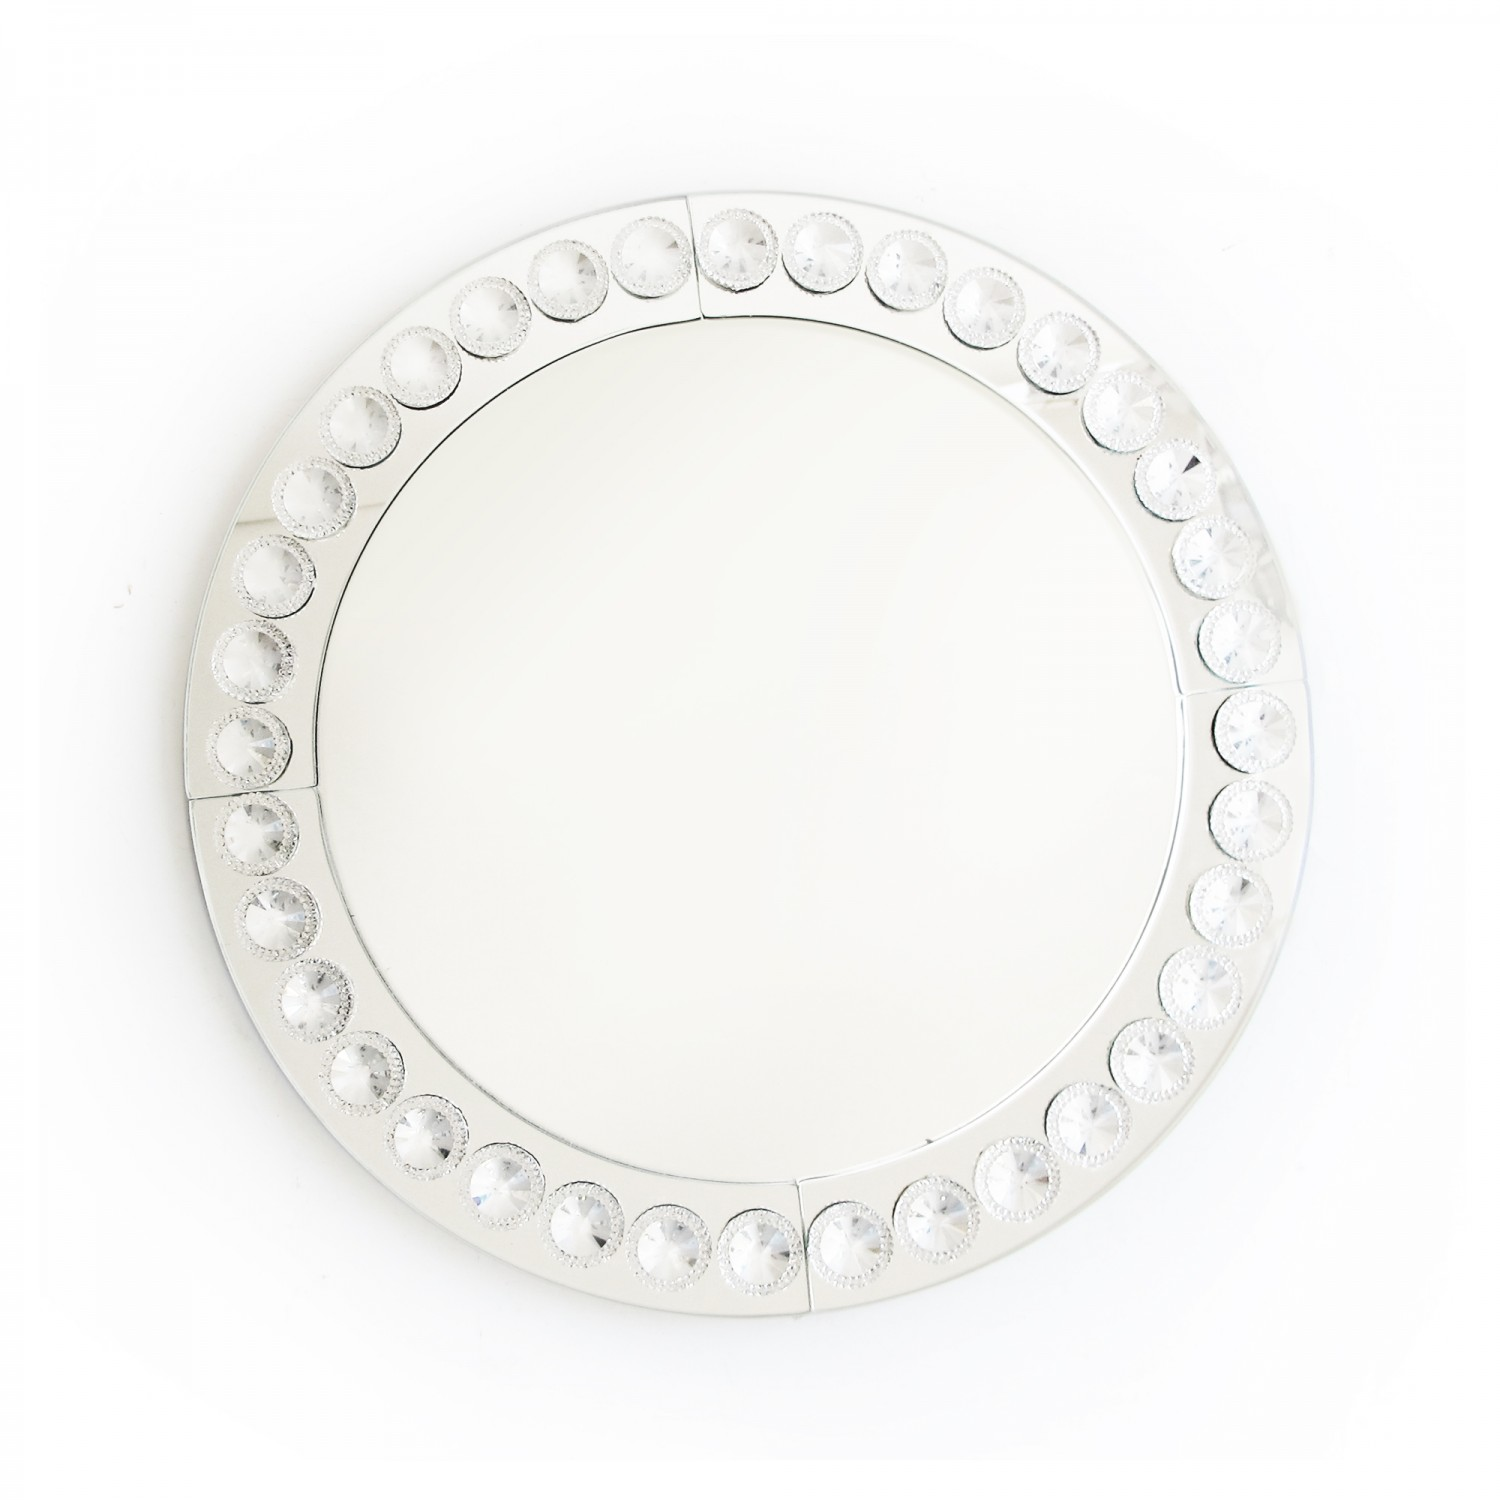 The Jay Companies 1332638 Round Clear Beaded Glass Charger Plate 13""